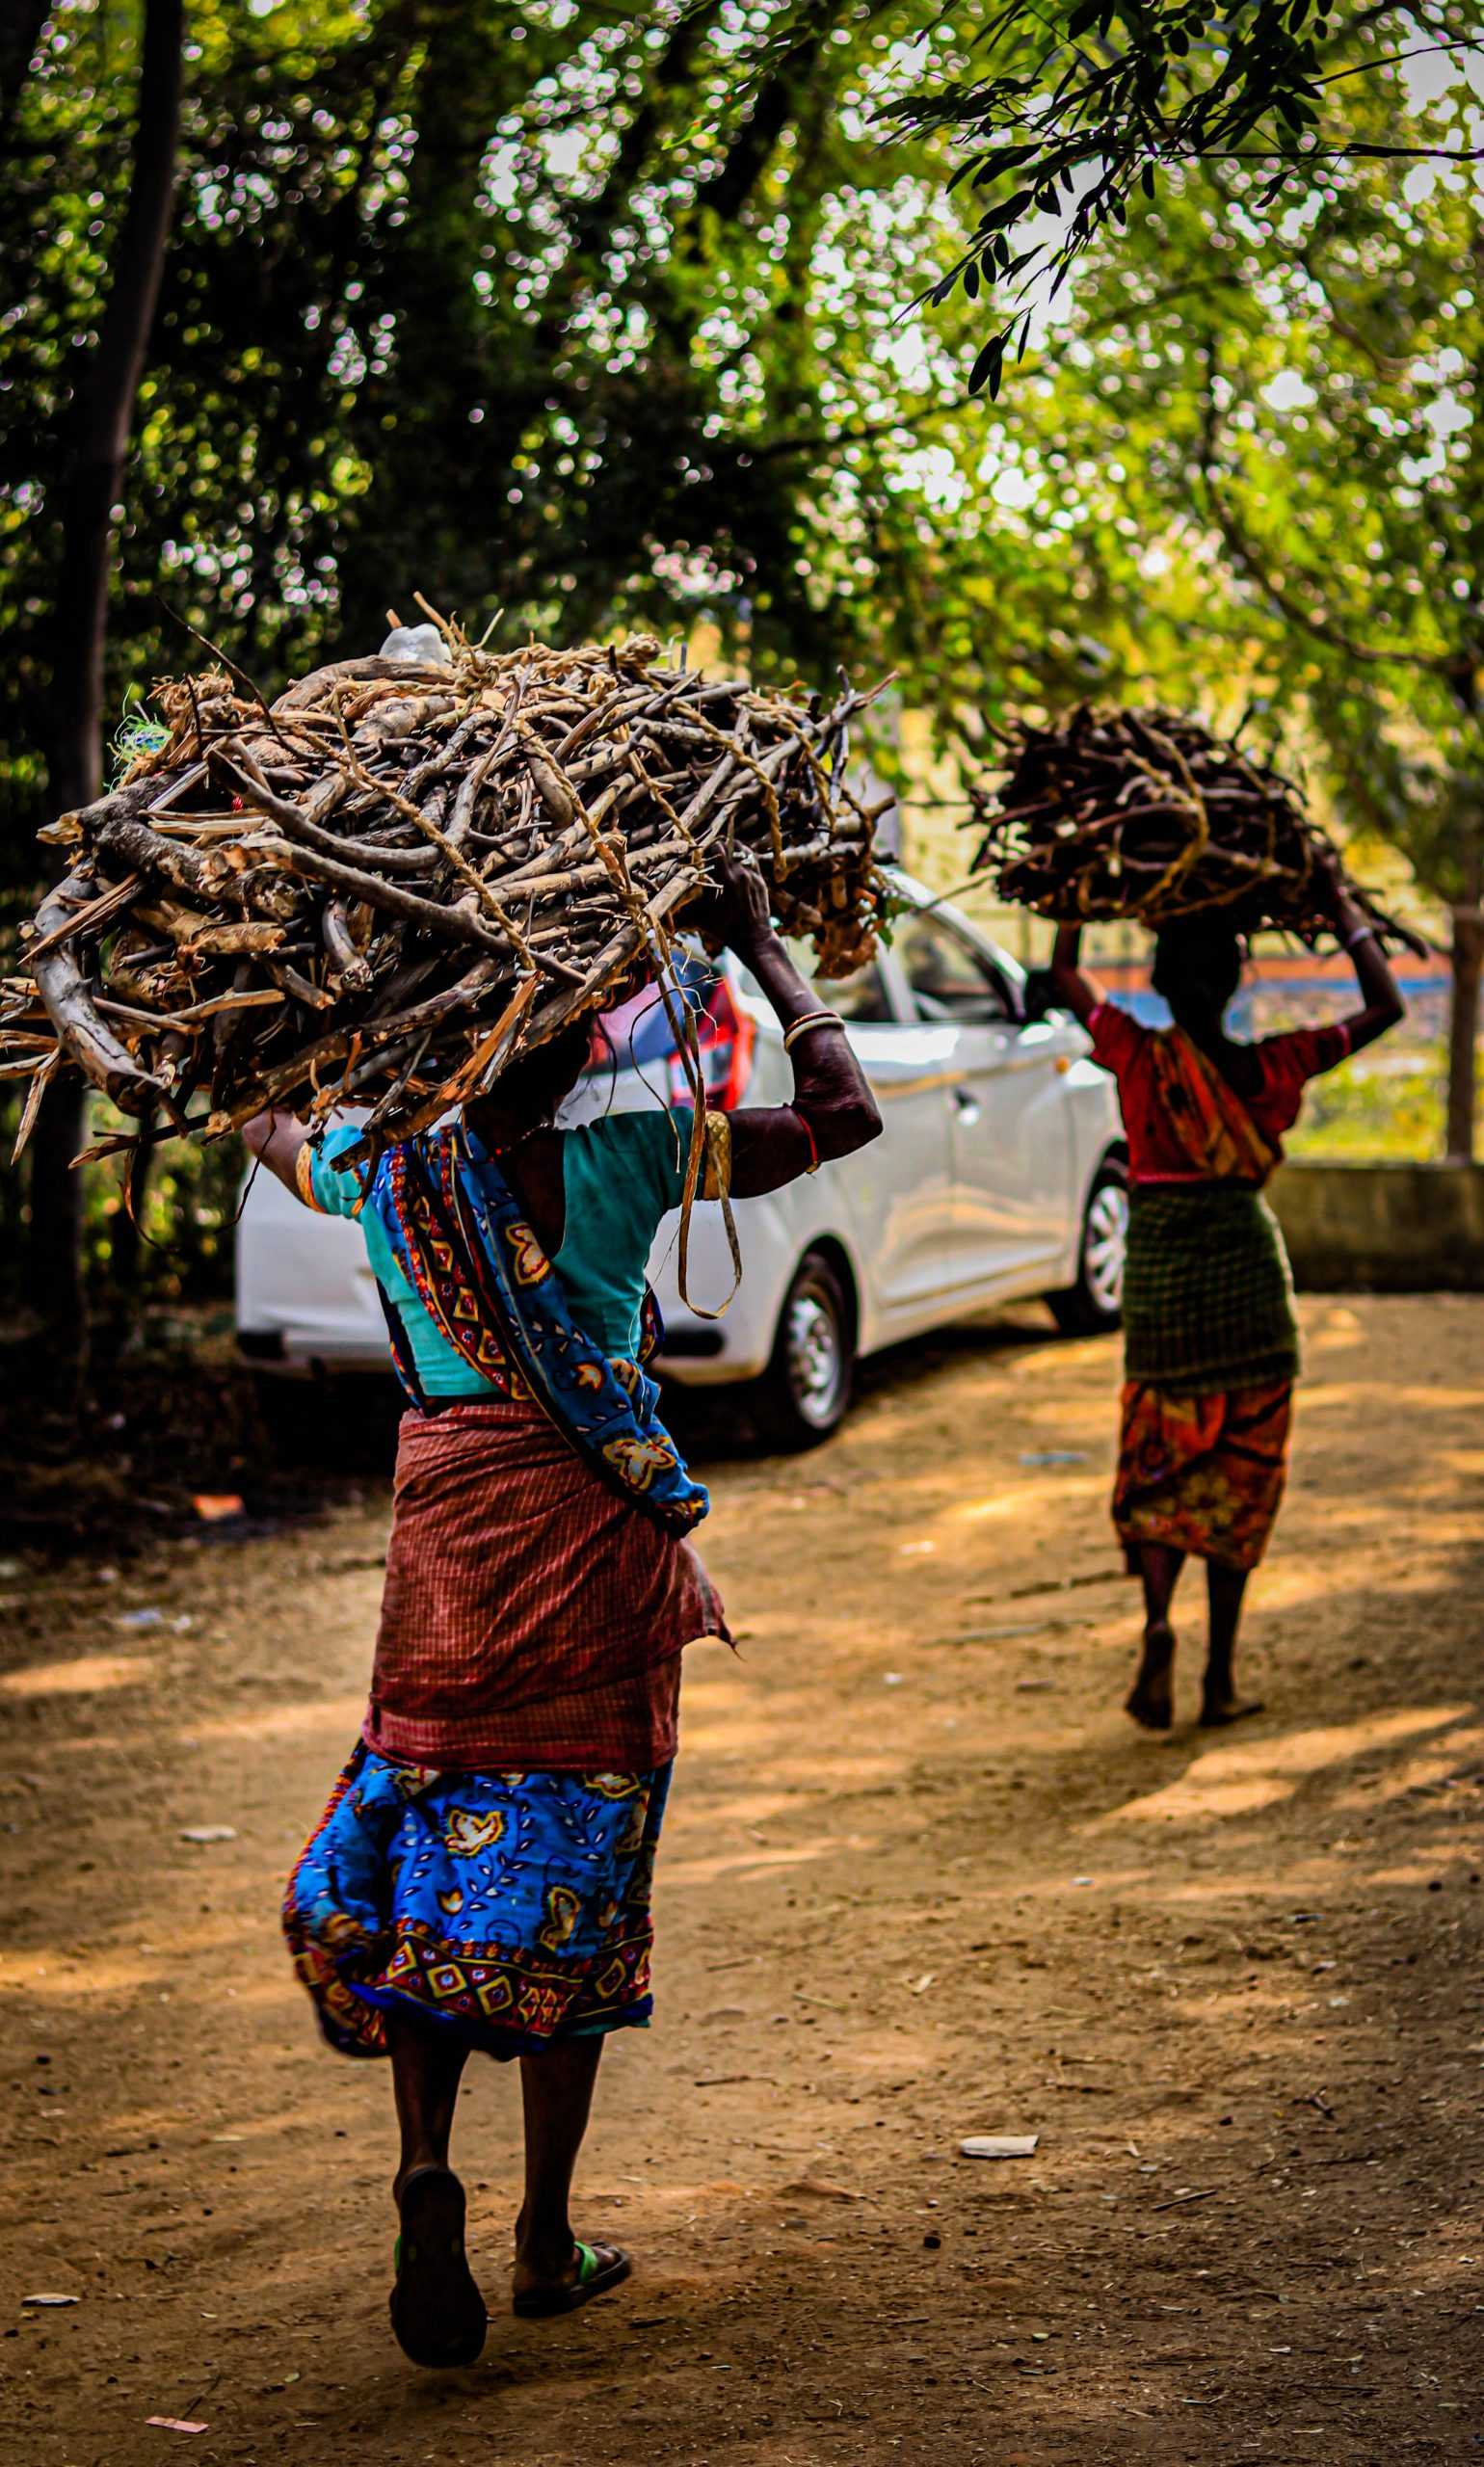 A village woman carrying fire woods